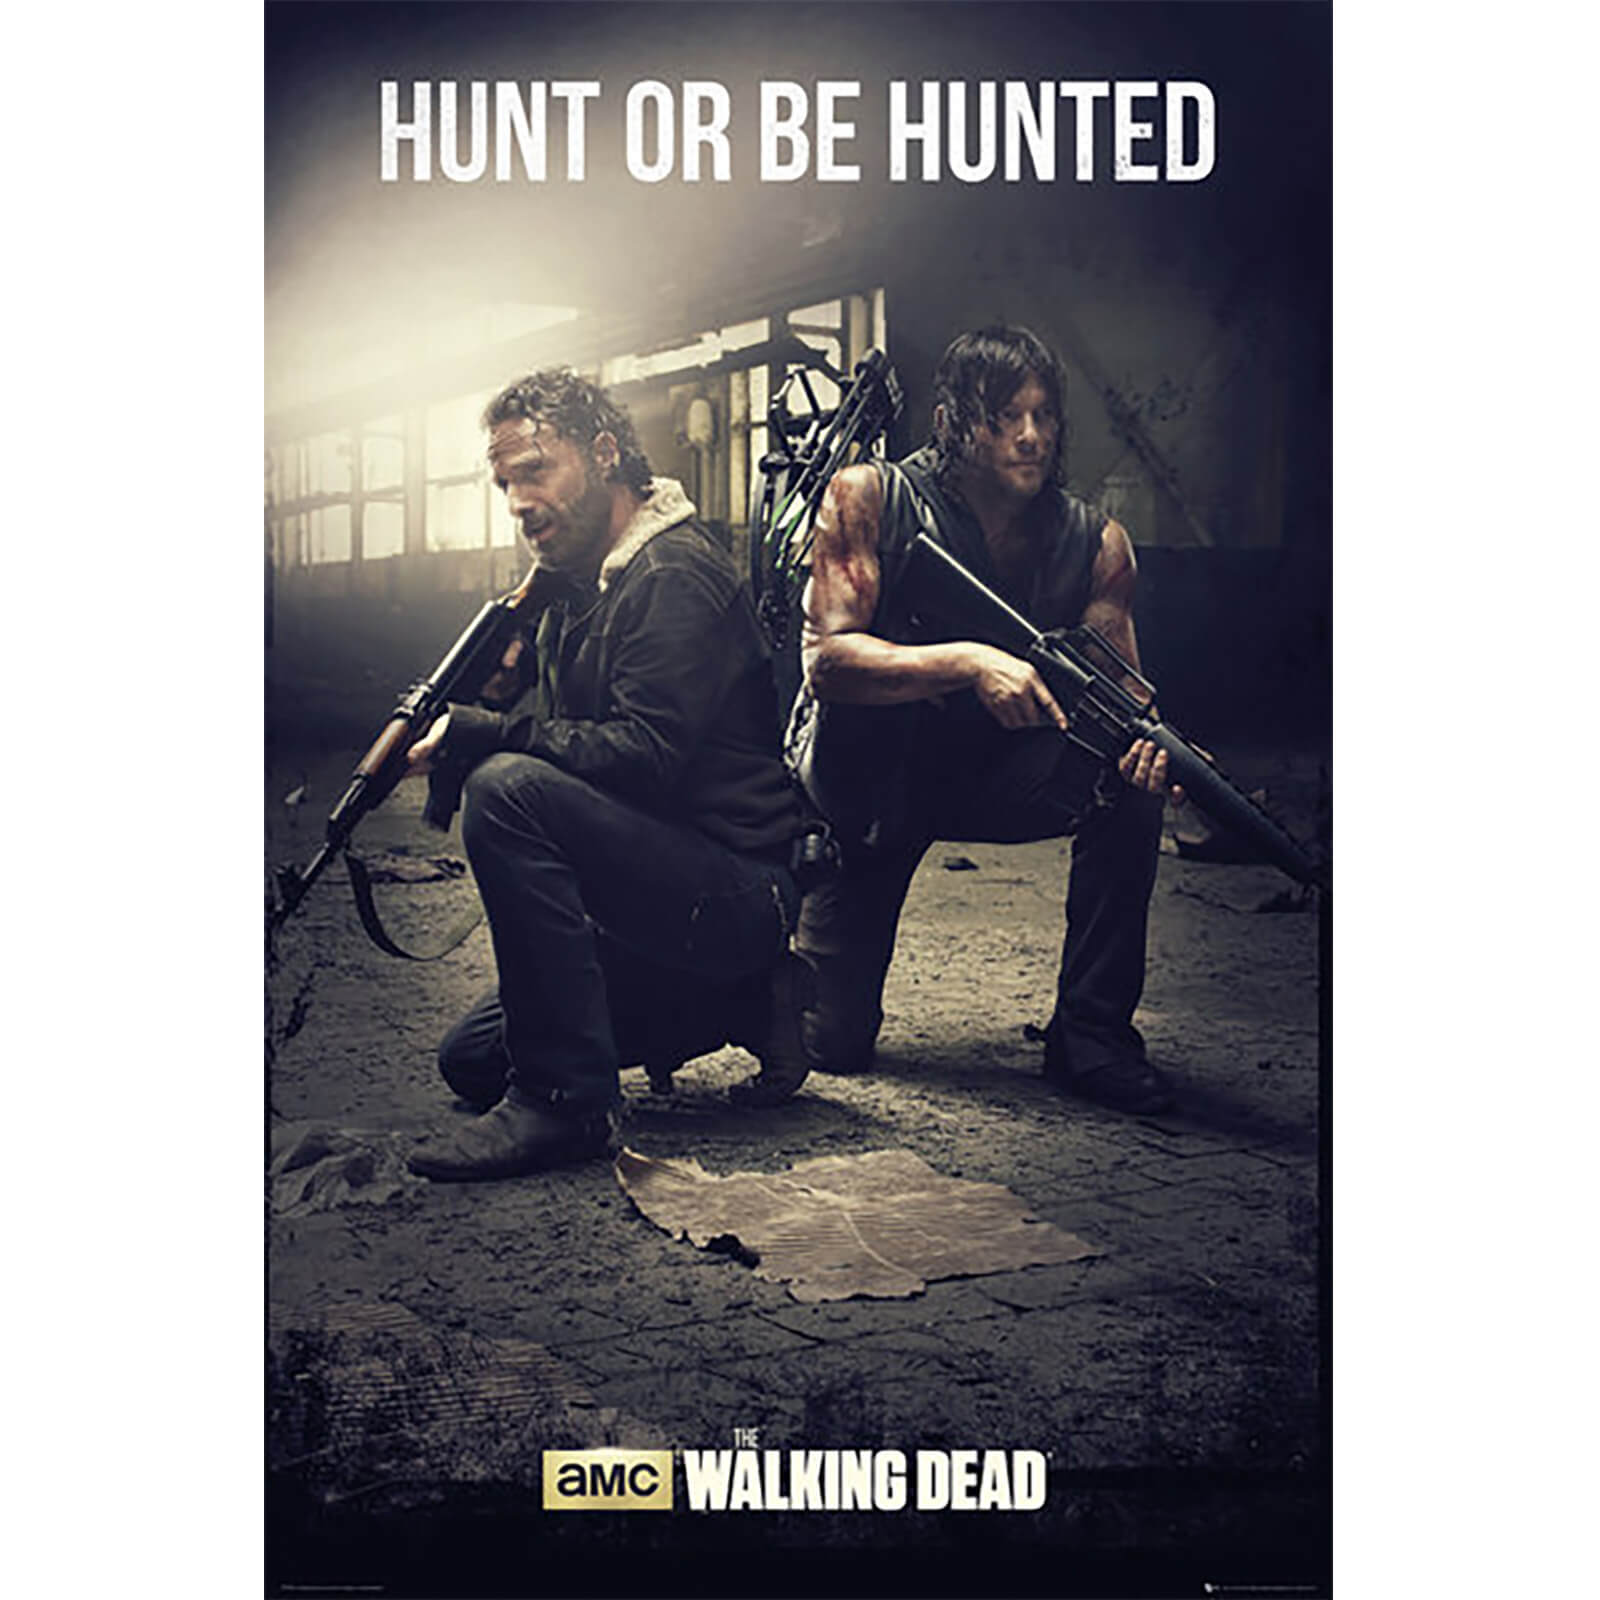 The Walking Dead Hunt - Maxi Poster - 61 x 91.5cm